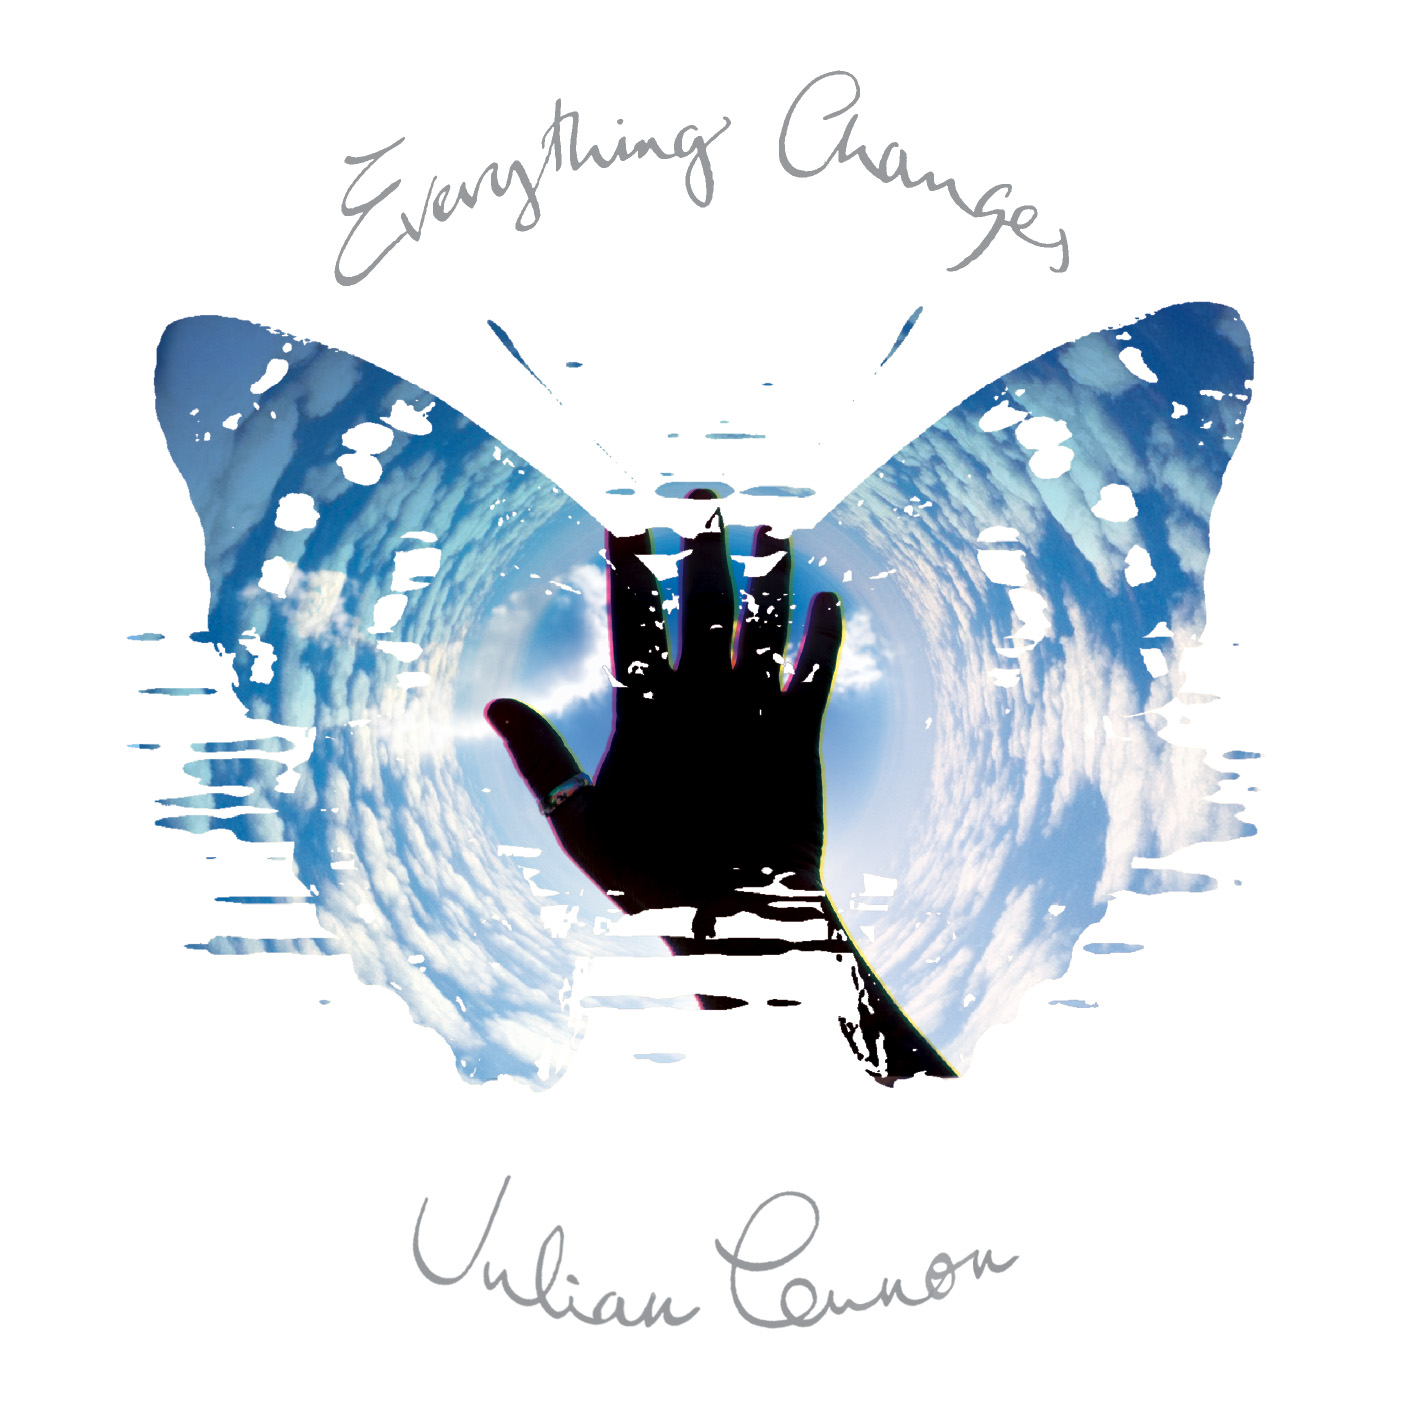 http://1.bp.blogspot.com/-t--zgB3pR08/Ty8cxYEG-bI/AAAAAAAABGw/Bwbhuf7TB9Y/s1600/05-+Julian_lennon_everything_changes_final_album_art.jpg